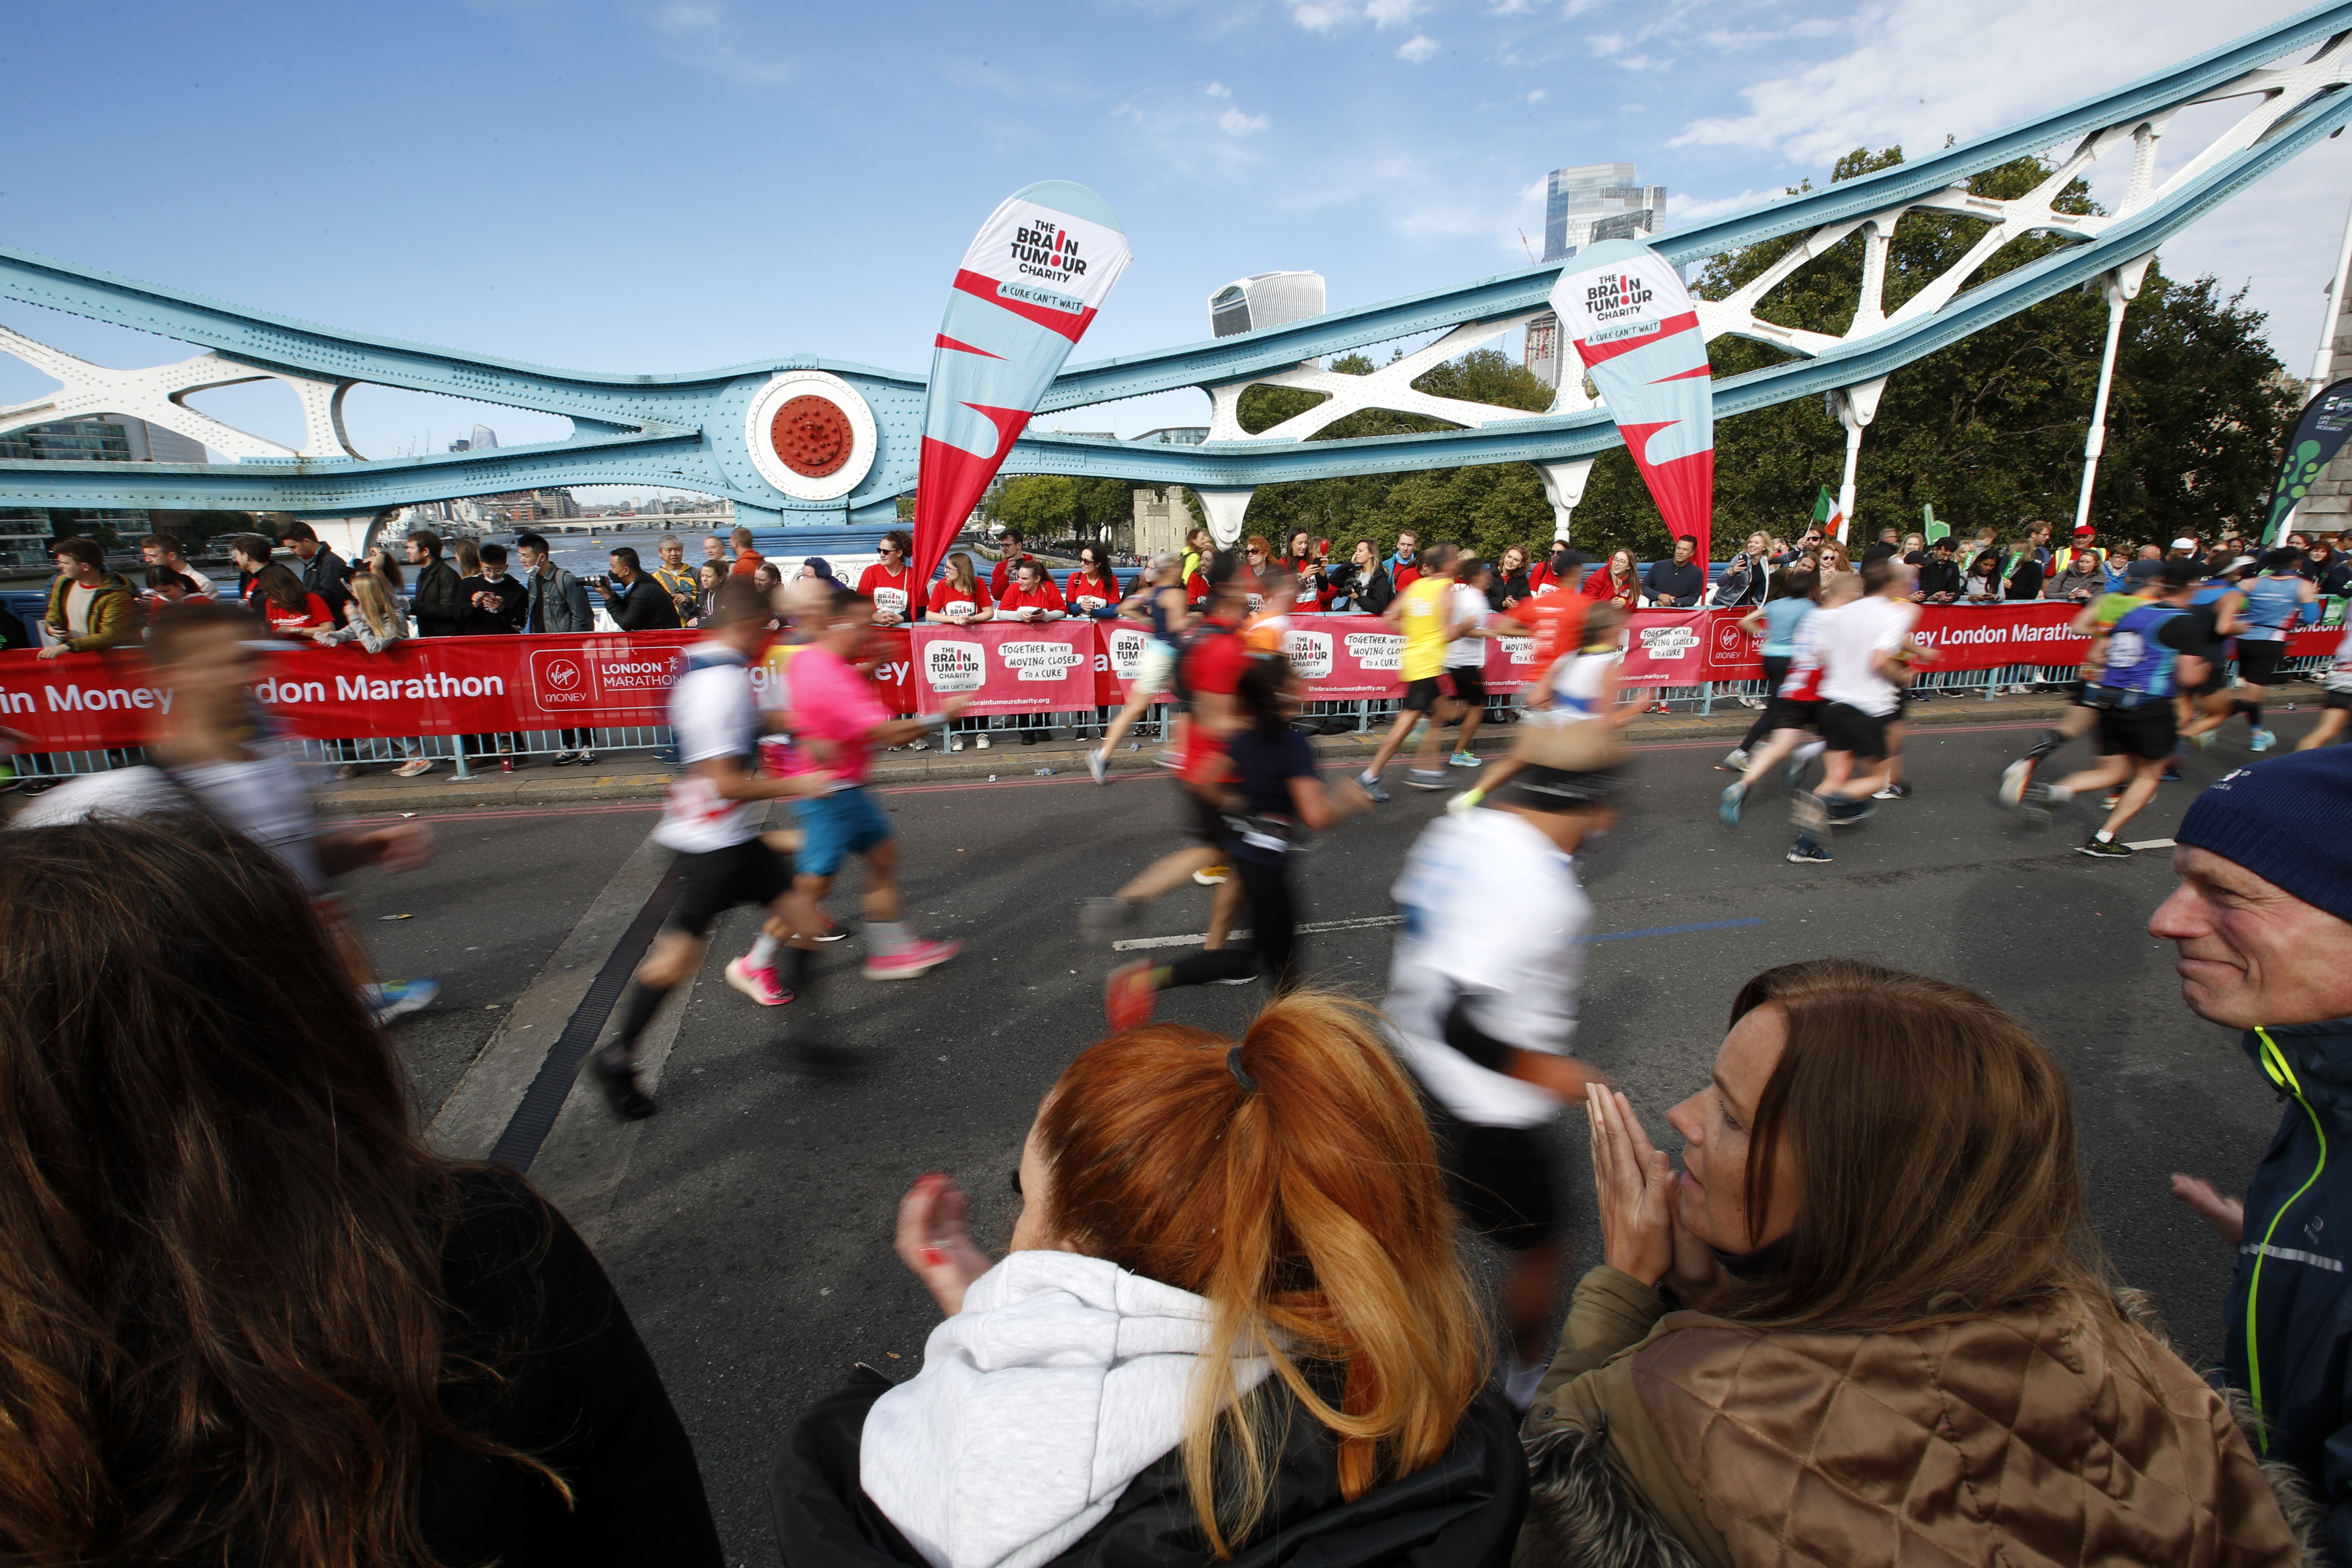 Athletics - London Marathon - London, Britain - October 3, 2021 Spectators watch runners during the London Marathon as they run over Tower Bridge Action Images via Reuters/Andrew Boyers